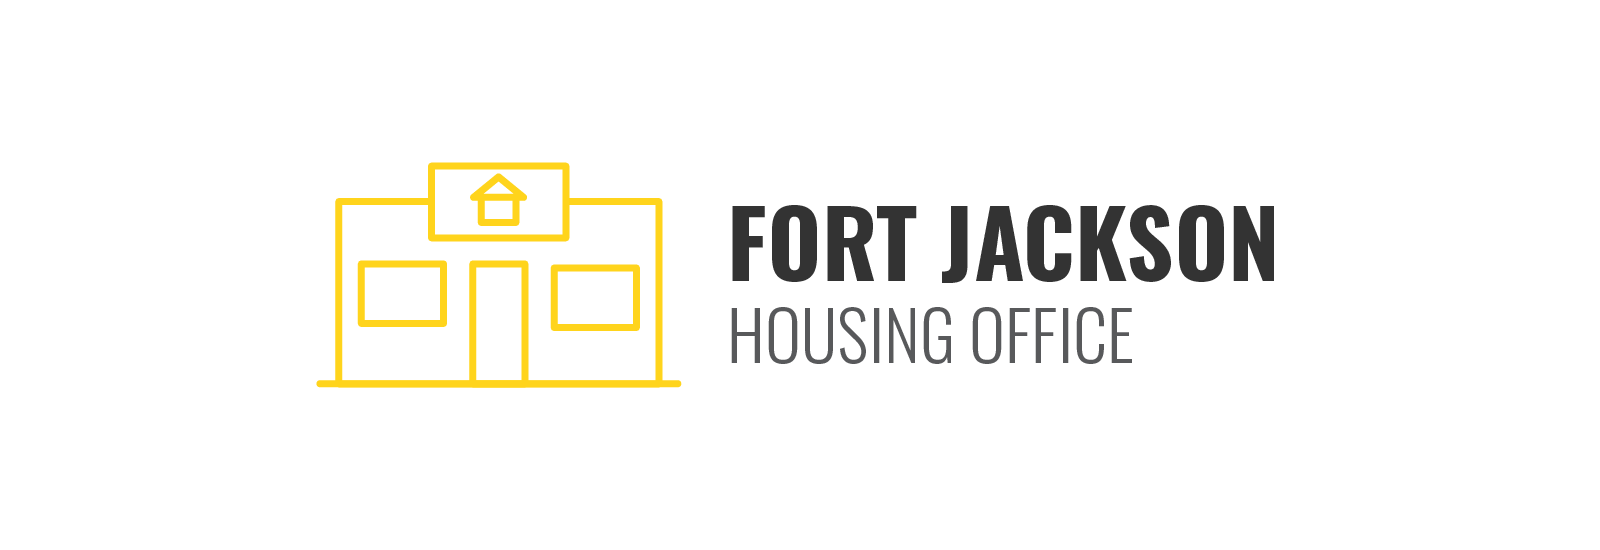 Fort Jackson Housing Office